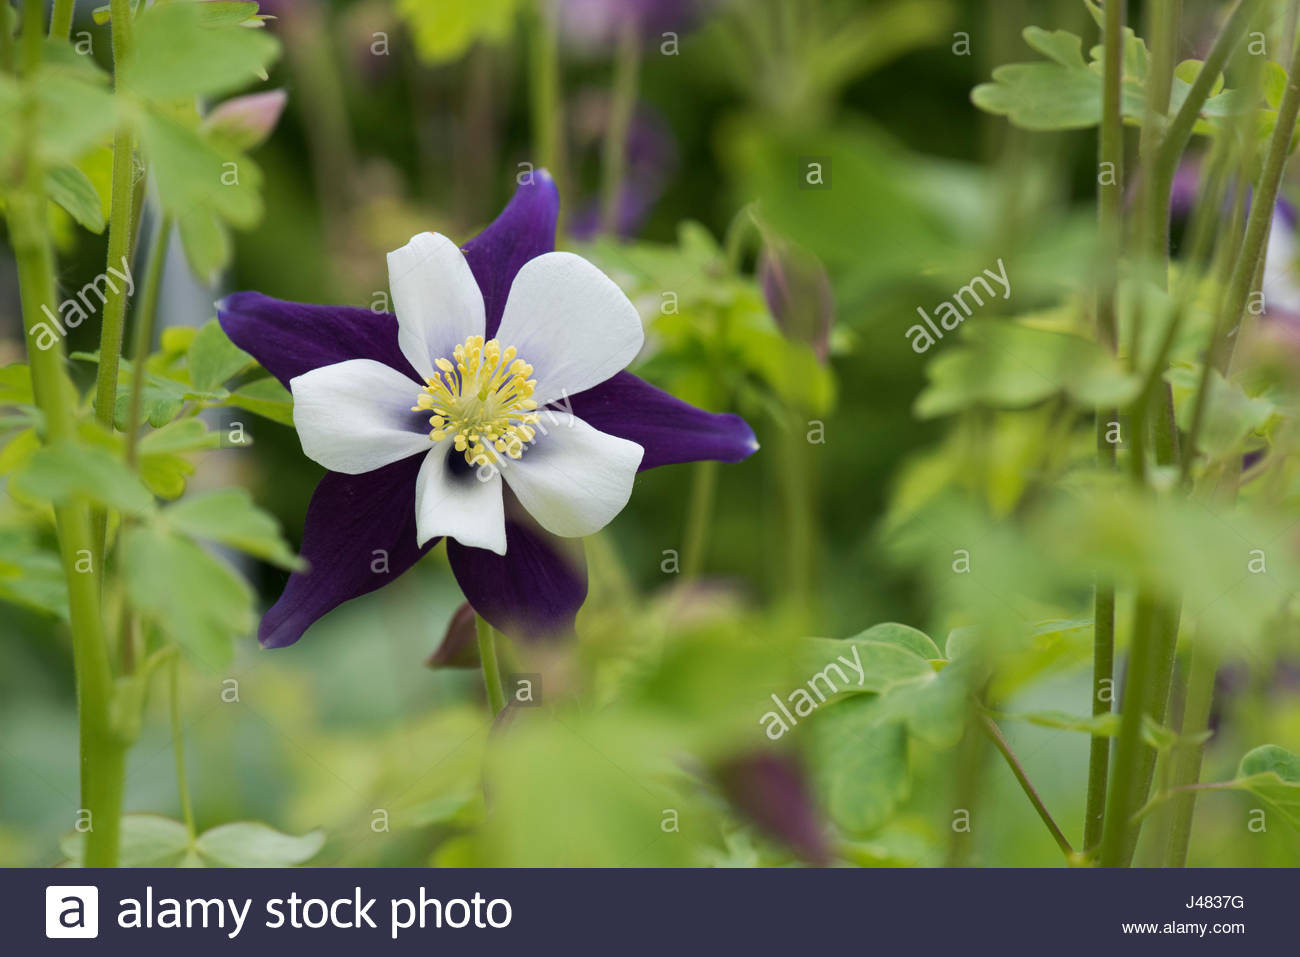 Cool white columbine flower contemporary wedding and flowers cute white columbine flower gallery images for wedding gown ideas izmirmasajfo Images